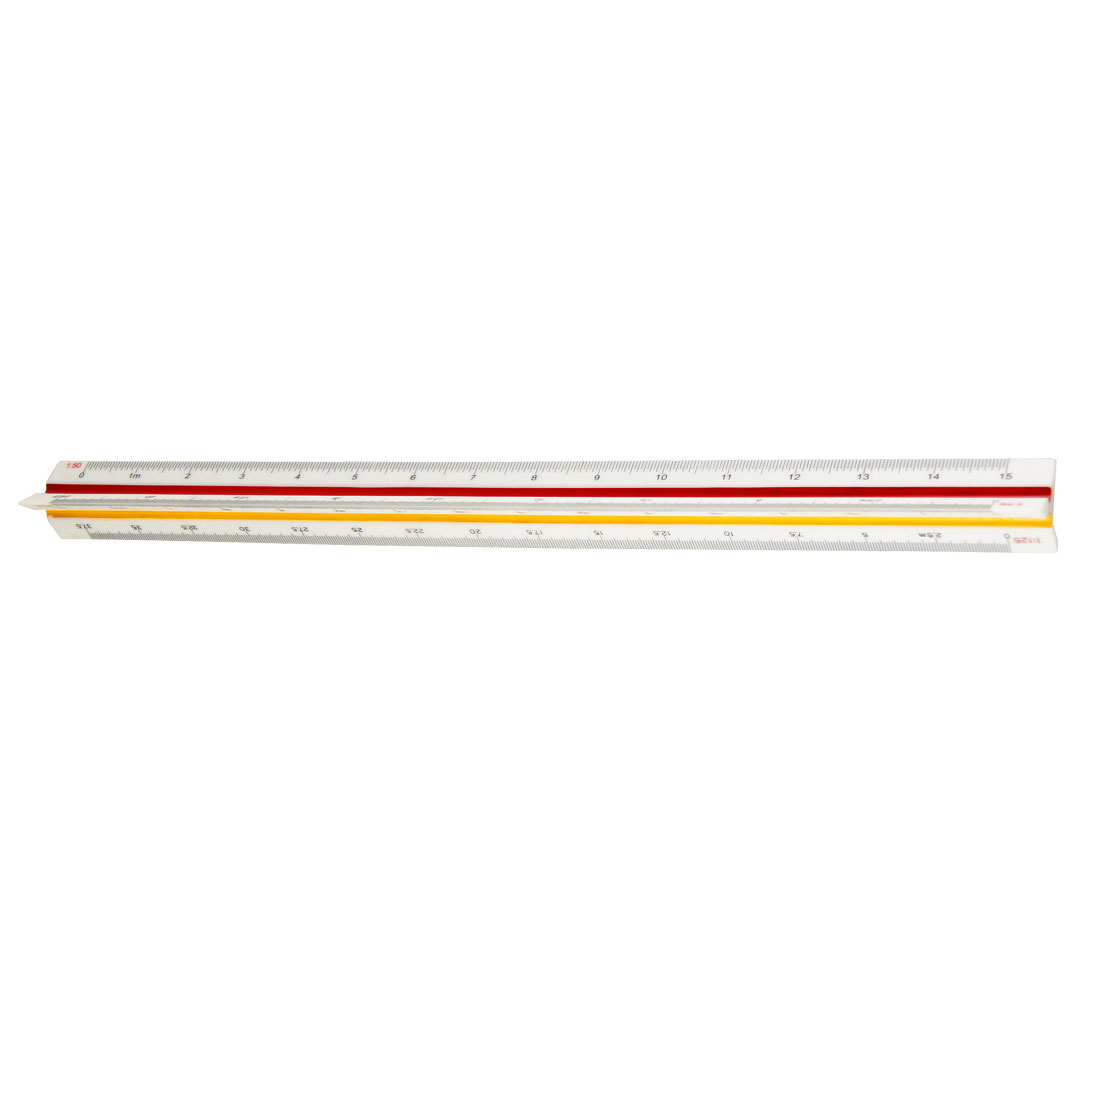 30cm Plastic Red Yellow Green Triangular Scale Ruler 1:20 1:25 1:50 1:75 1:100